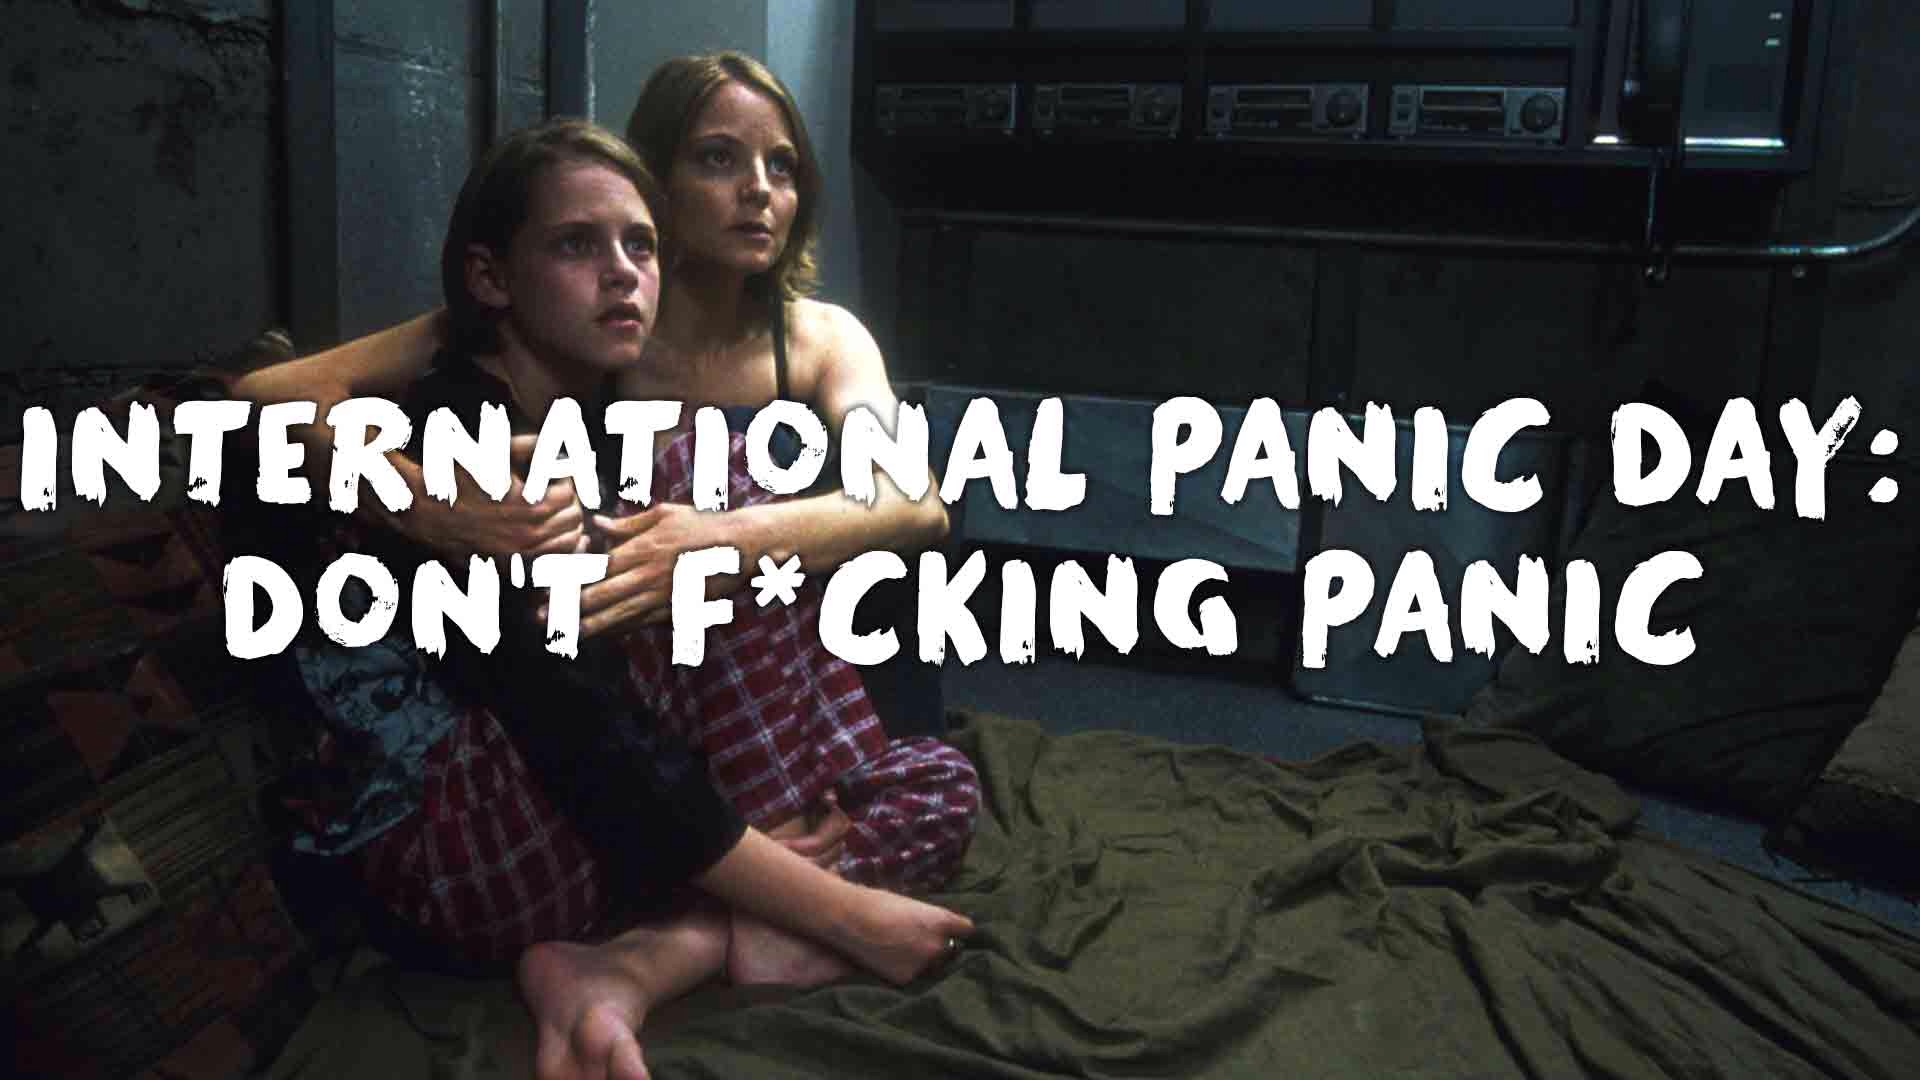 Happy International Panic Day!